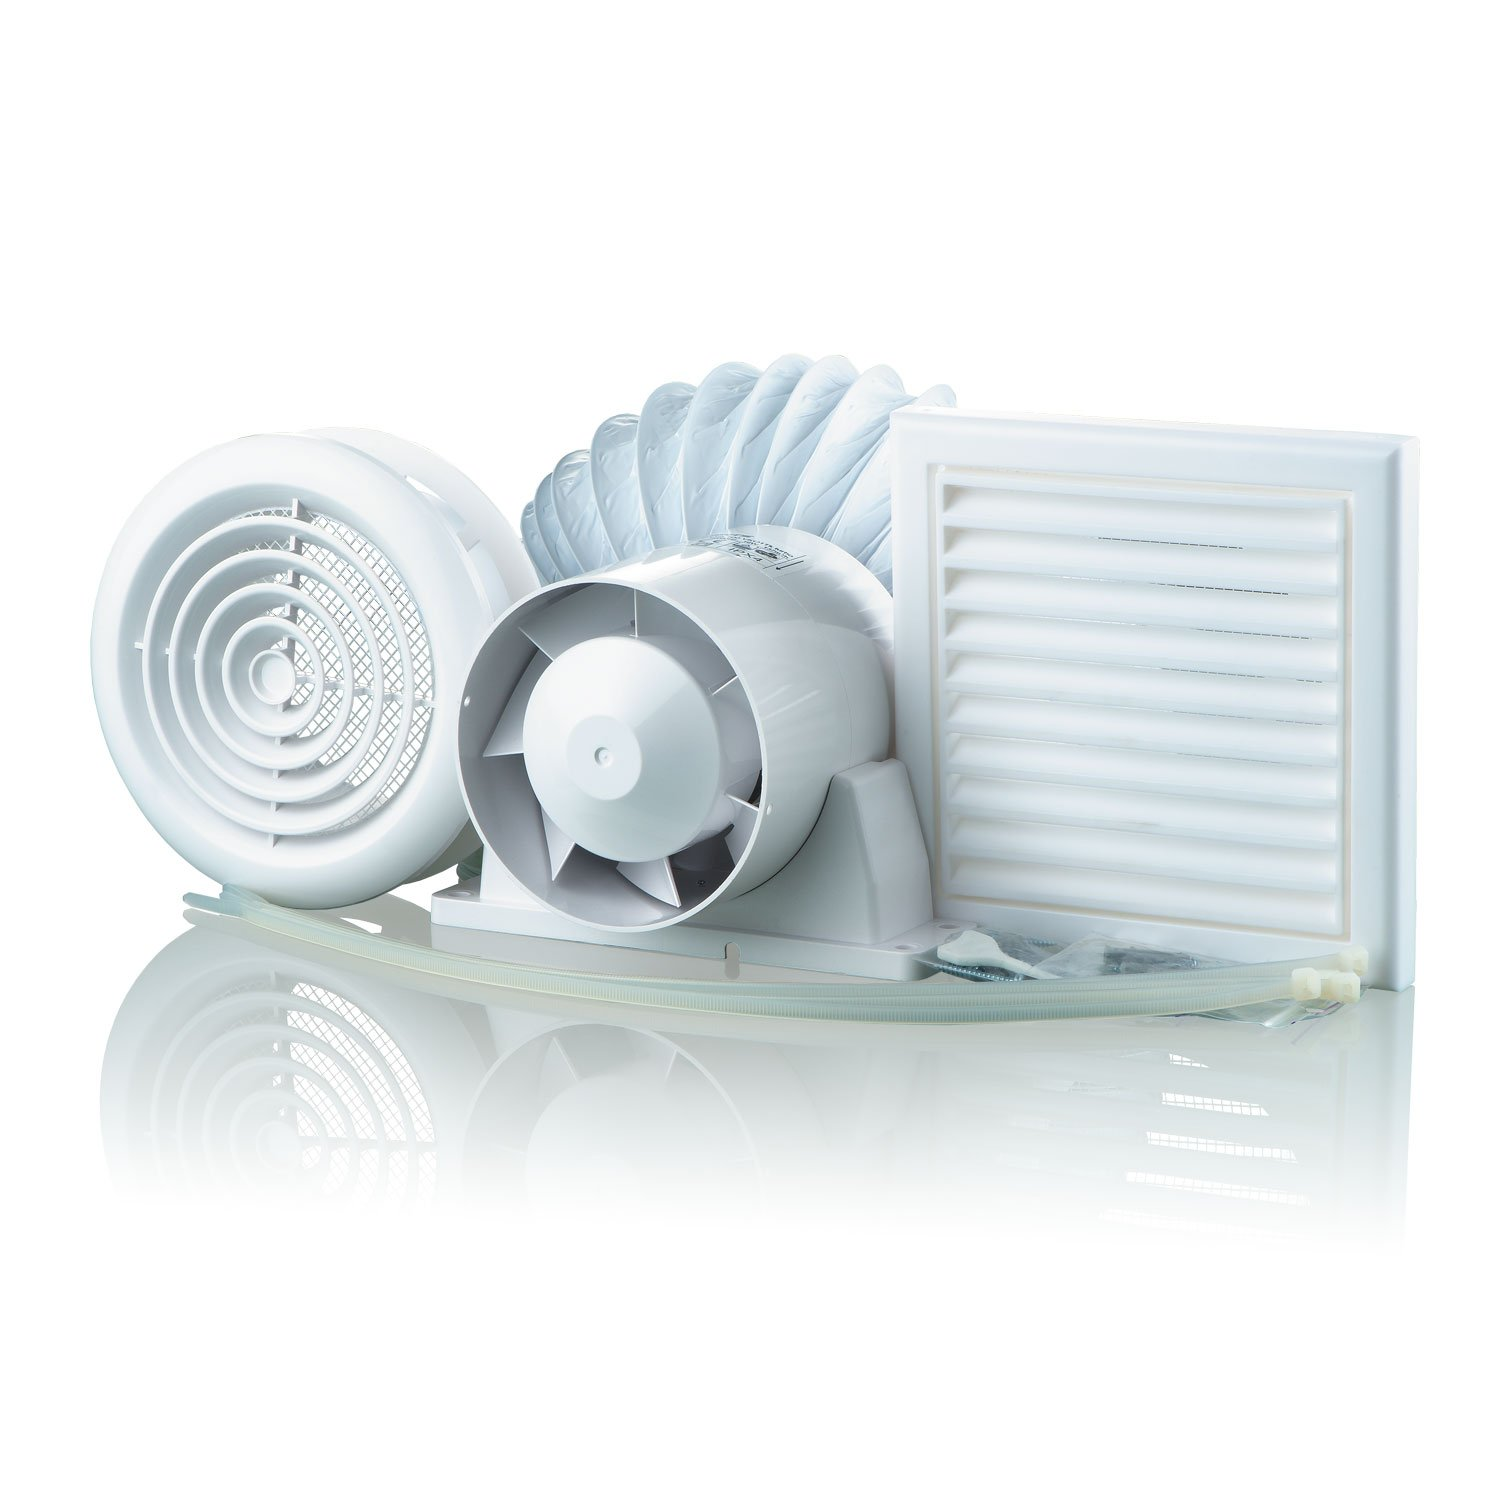 Blauberg UK KIT VKO 100-1 - Kit de ventilació n de aseo con temporizador, 100 mm, color blanco, 8 piezas